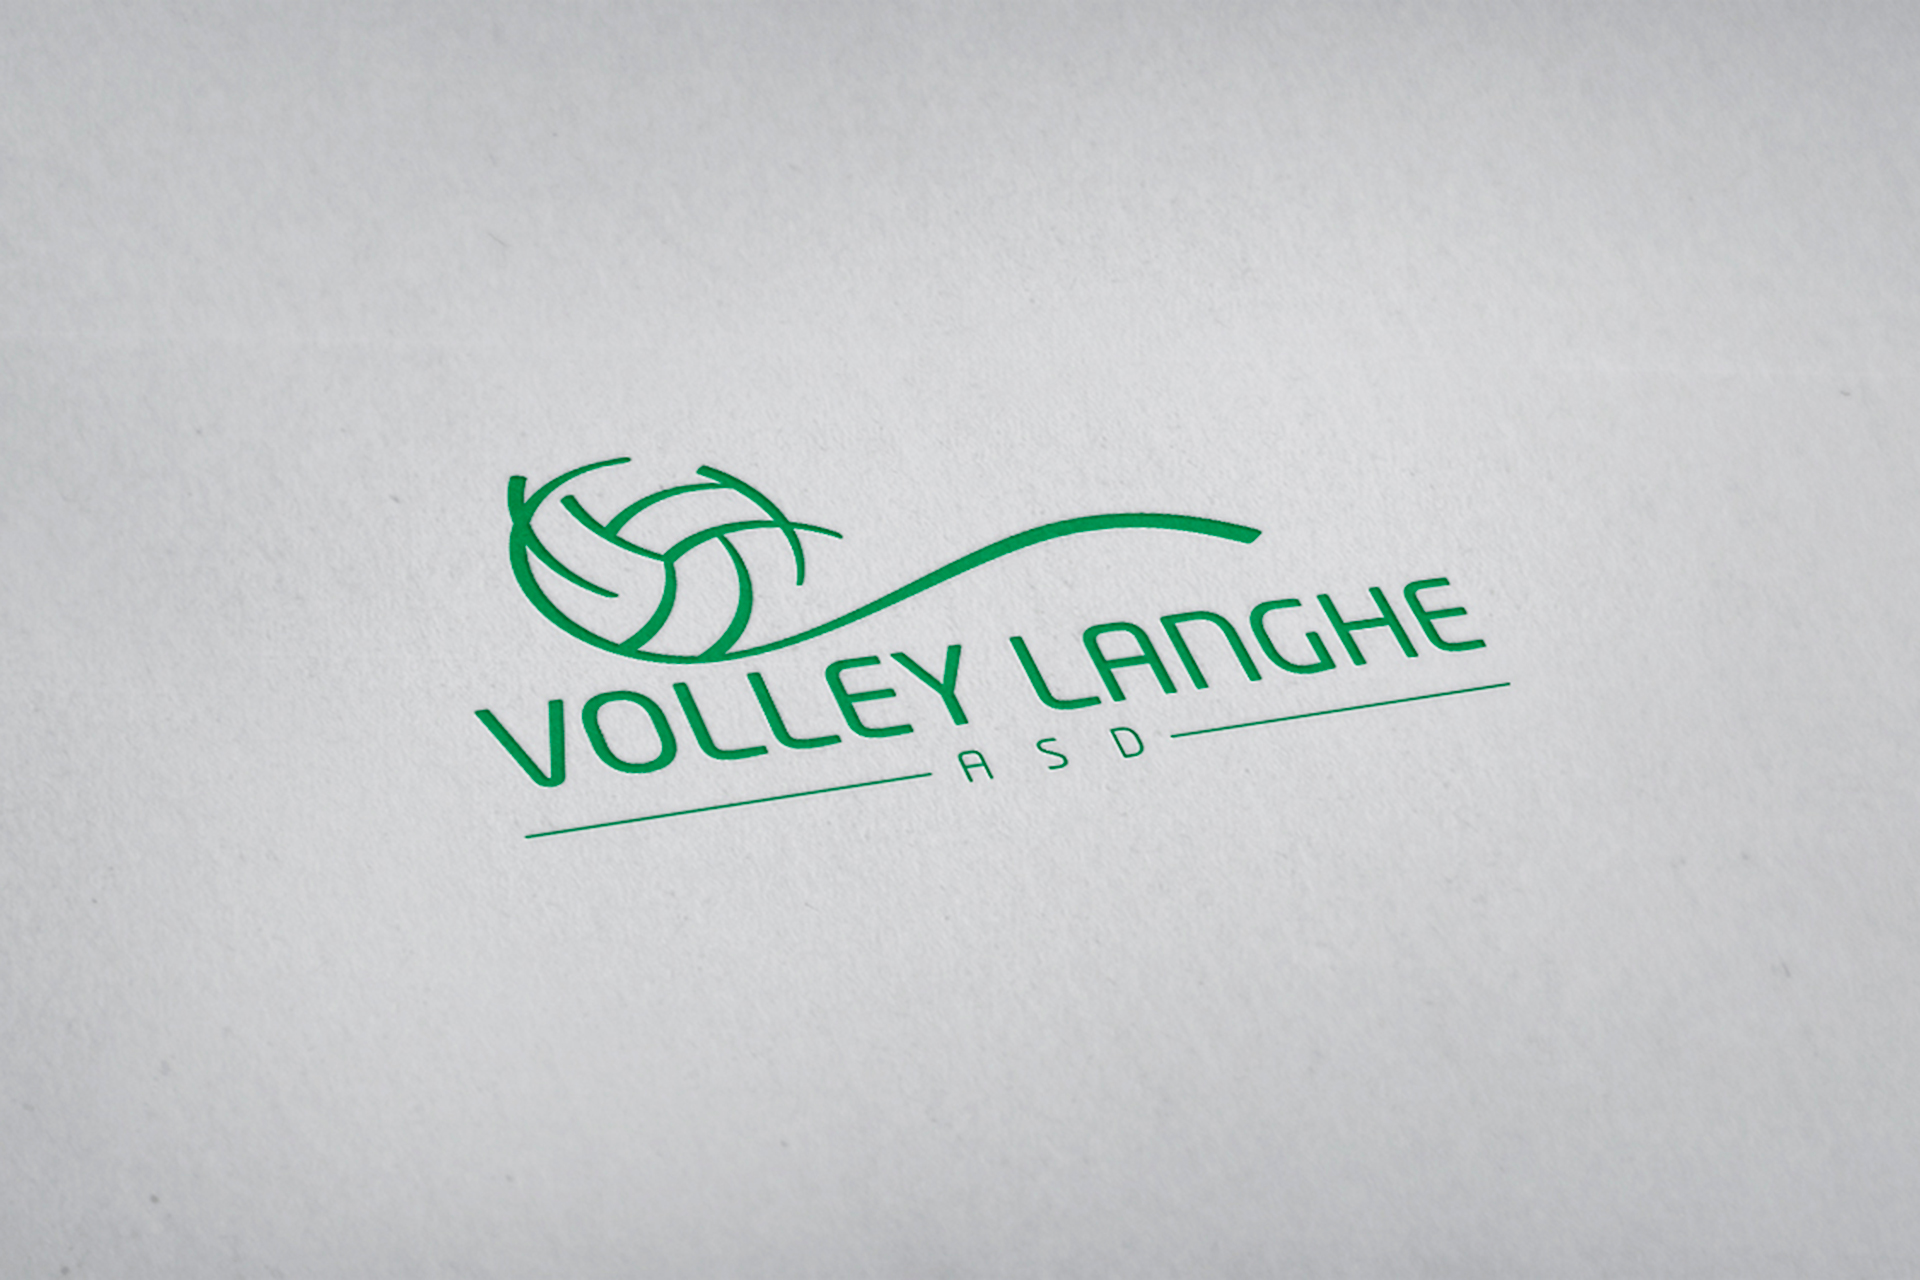 Volley Langhe